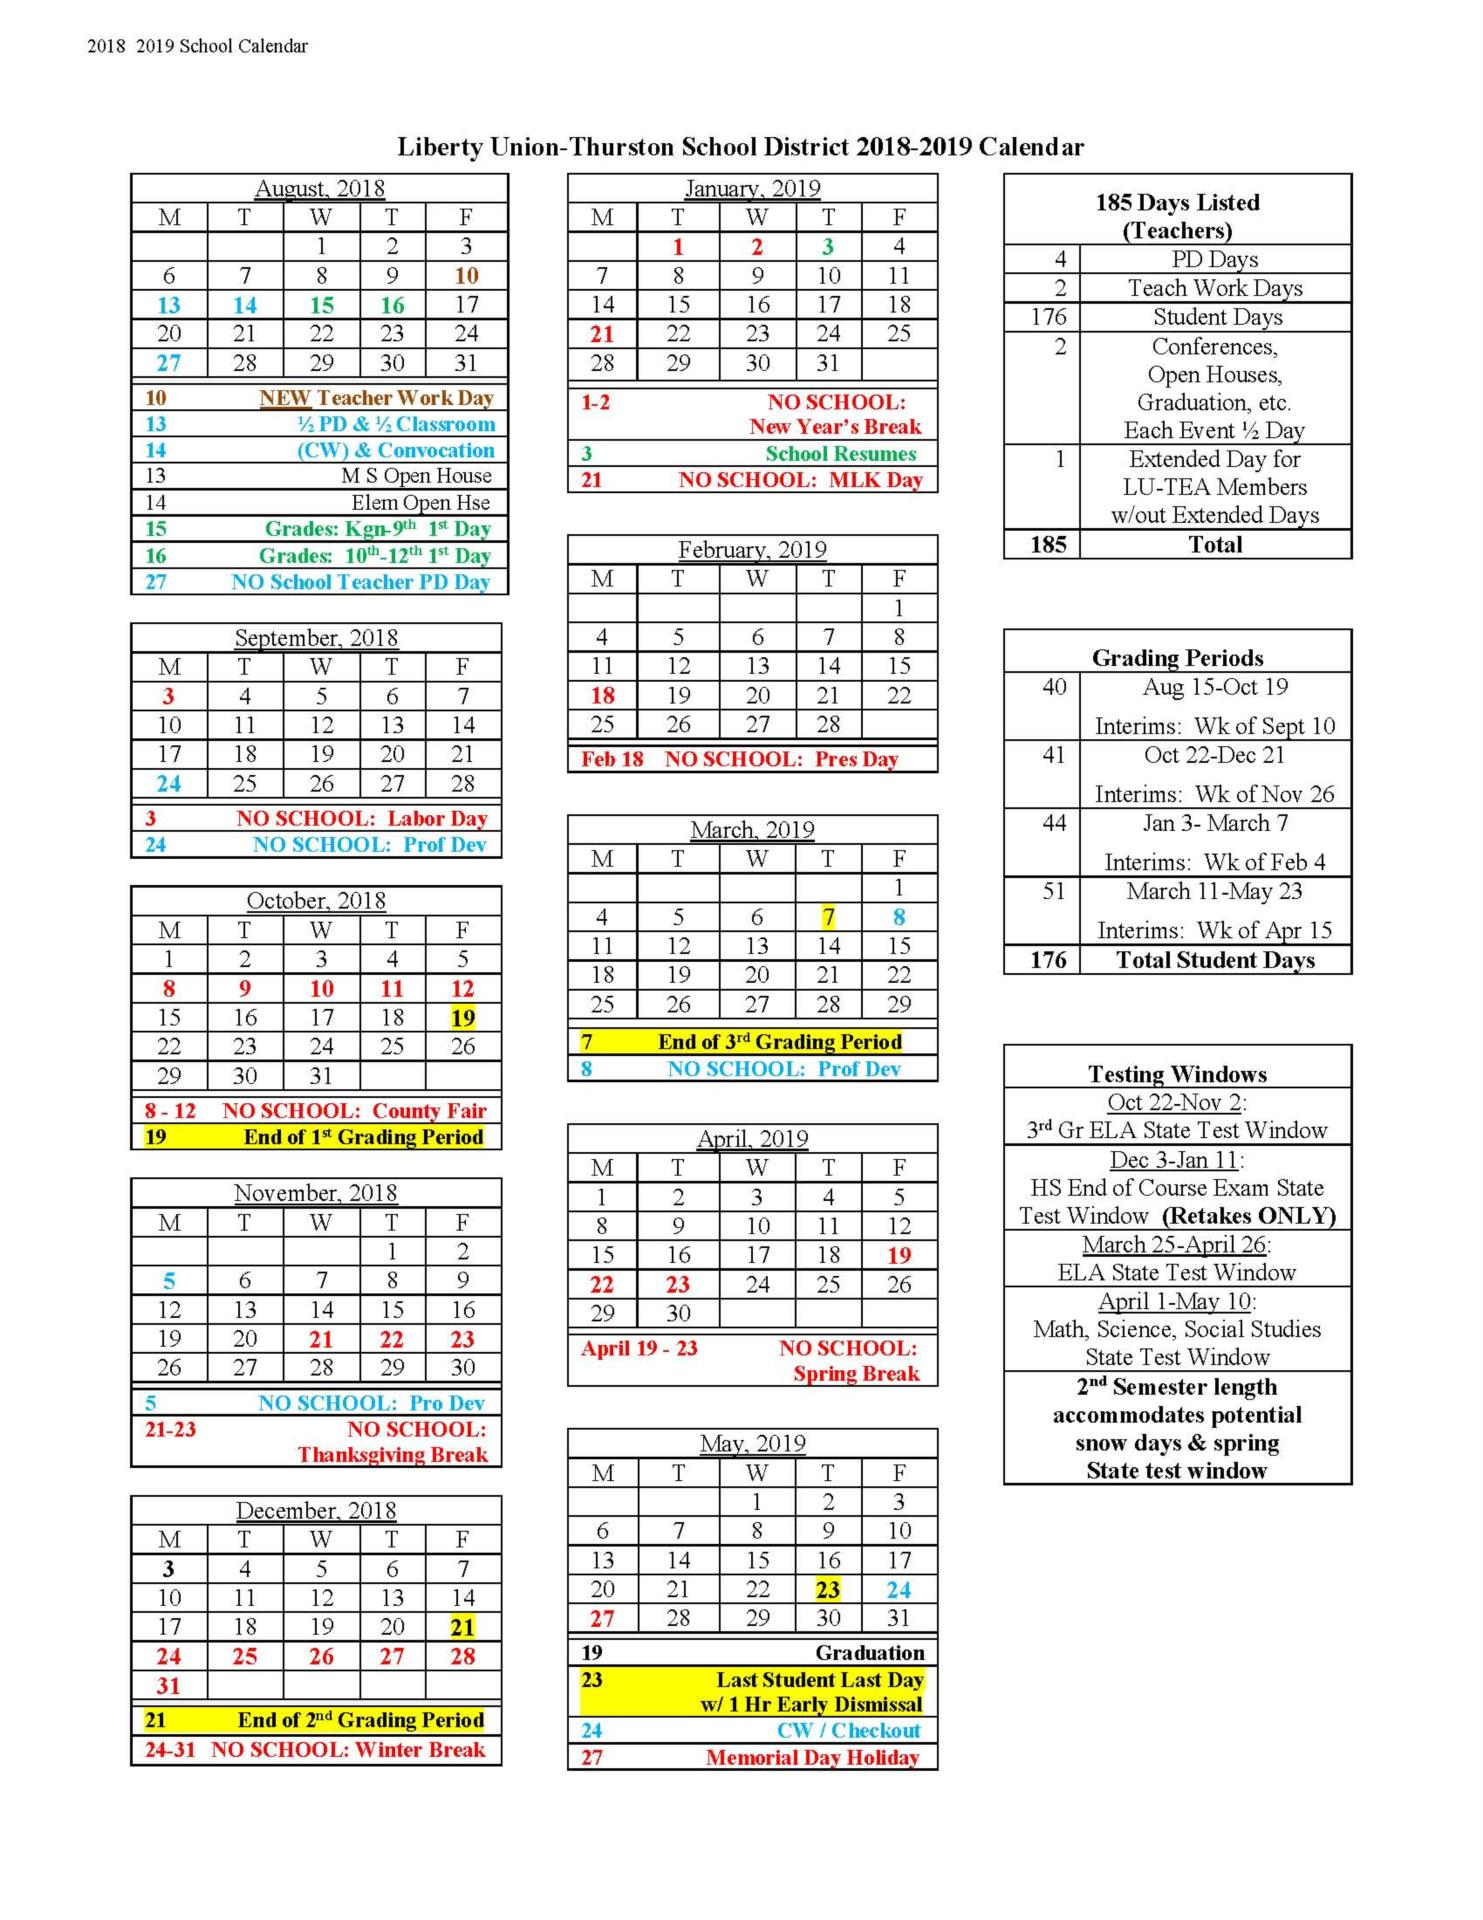 2018 2019 liberty union thurston school calendar